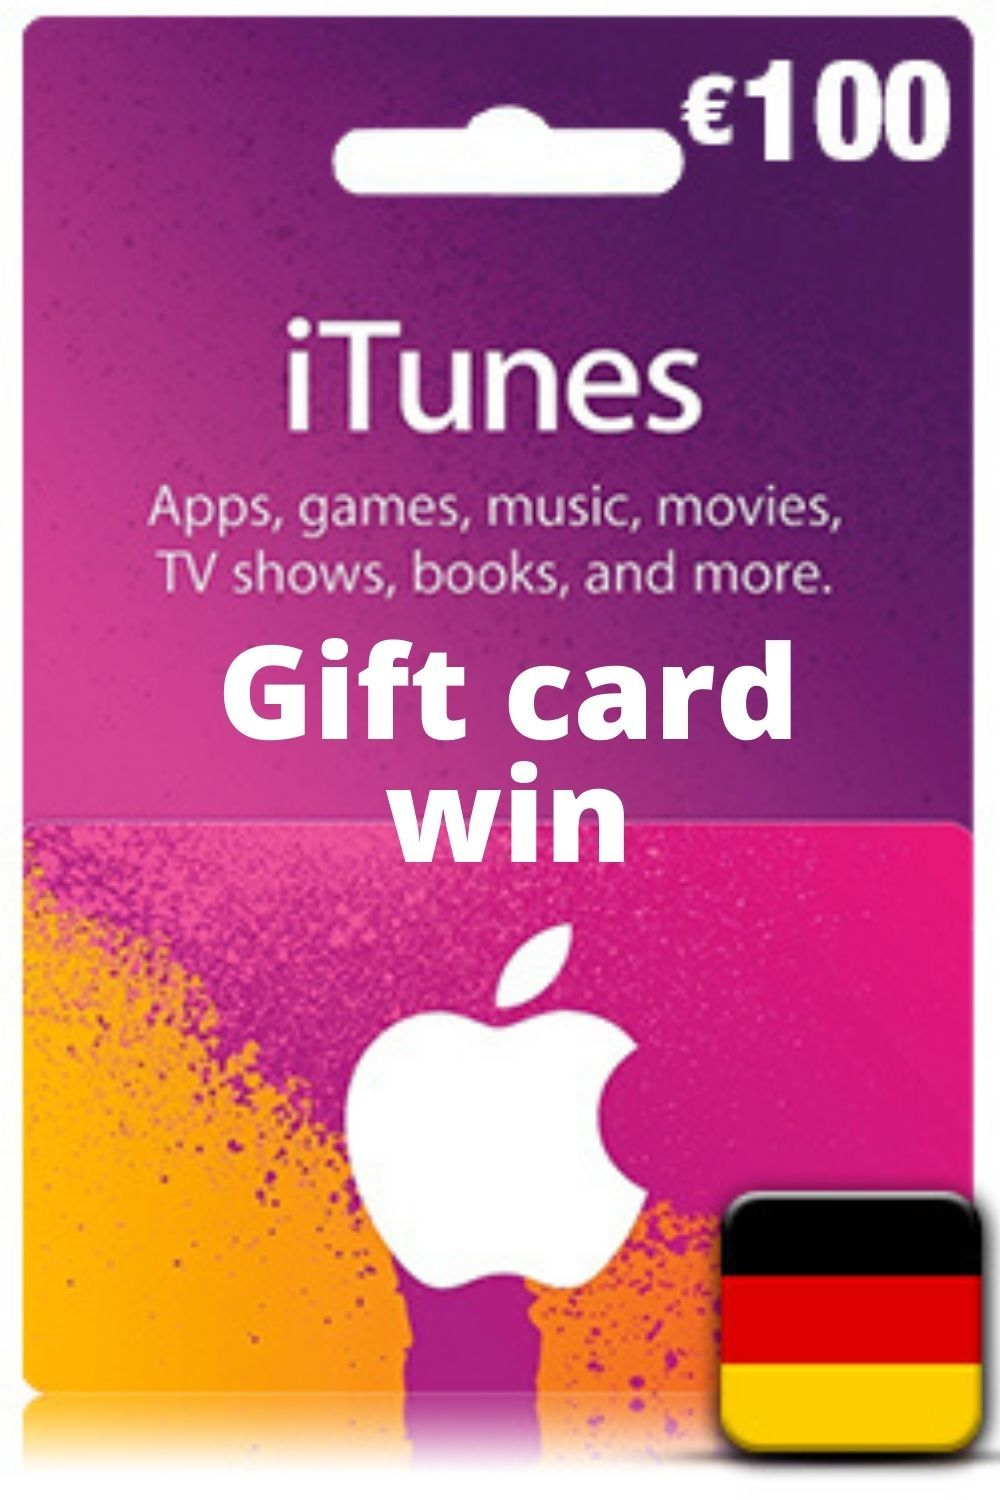 Fake Itunes Gift Card Numbers That Work Itunes Gift Cards Gift Card Number Free Itunes Gift Card